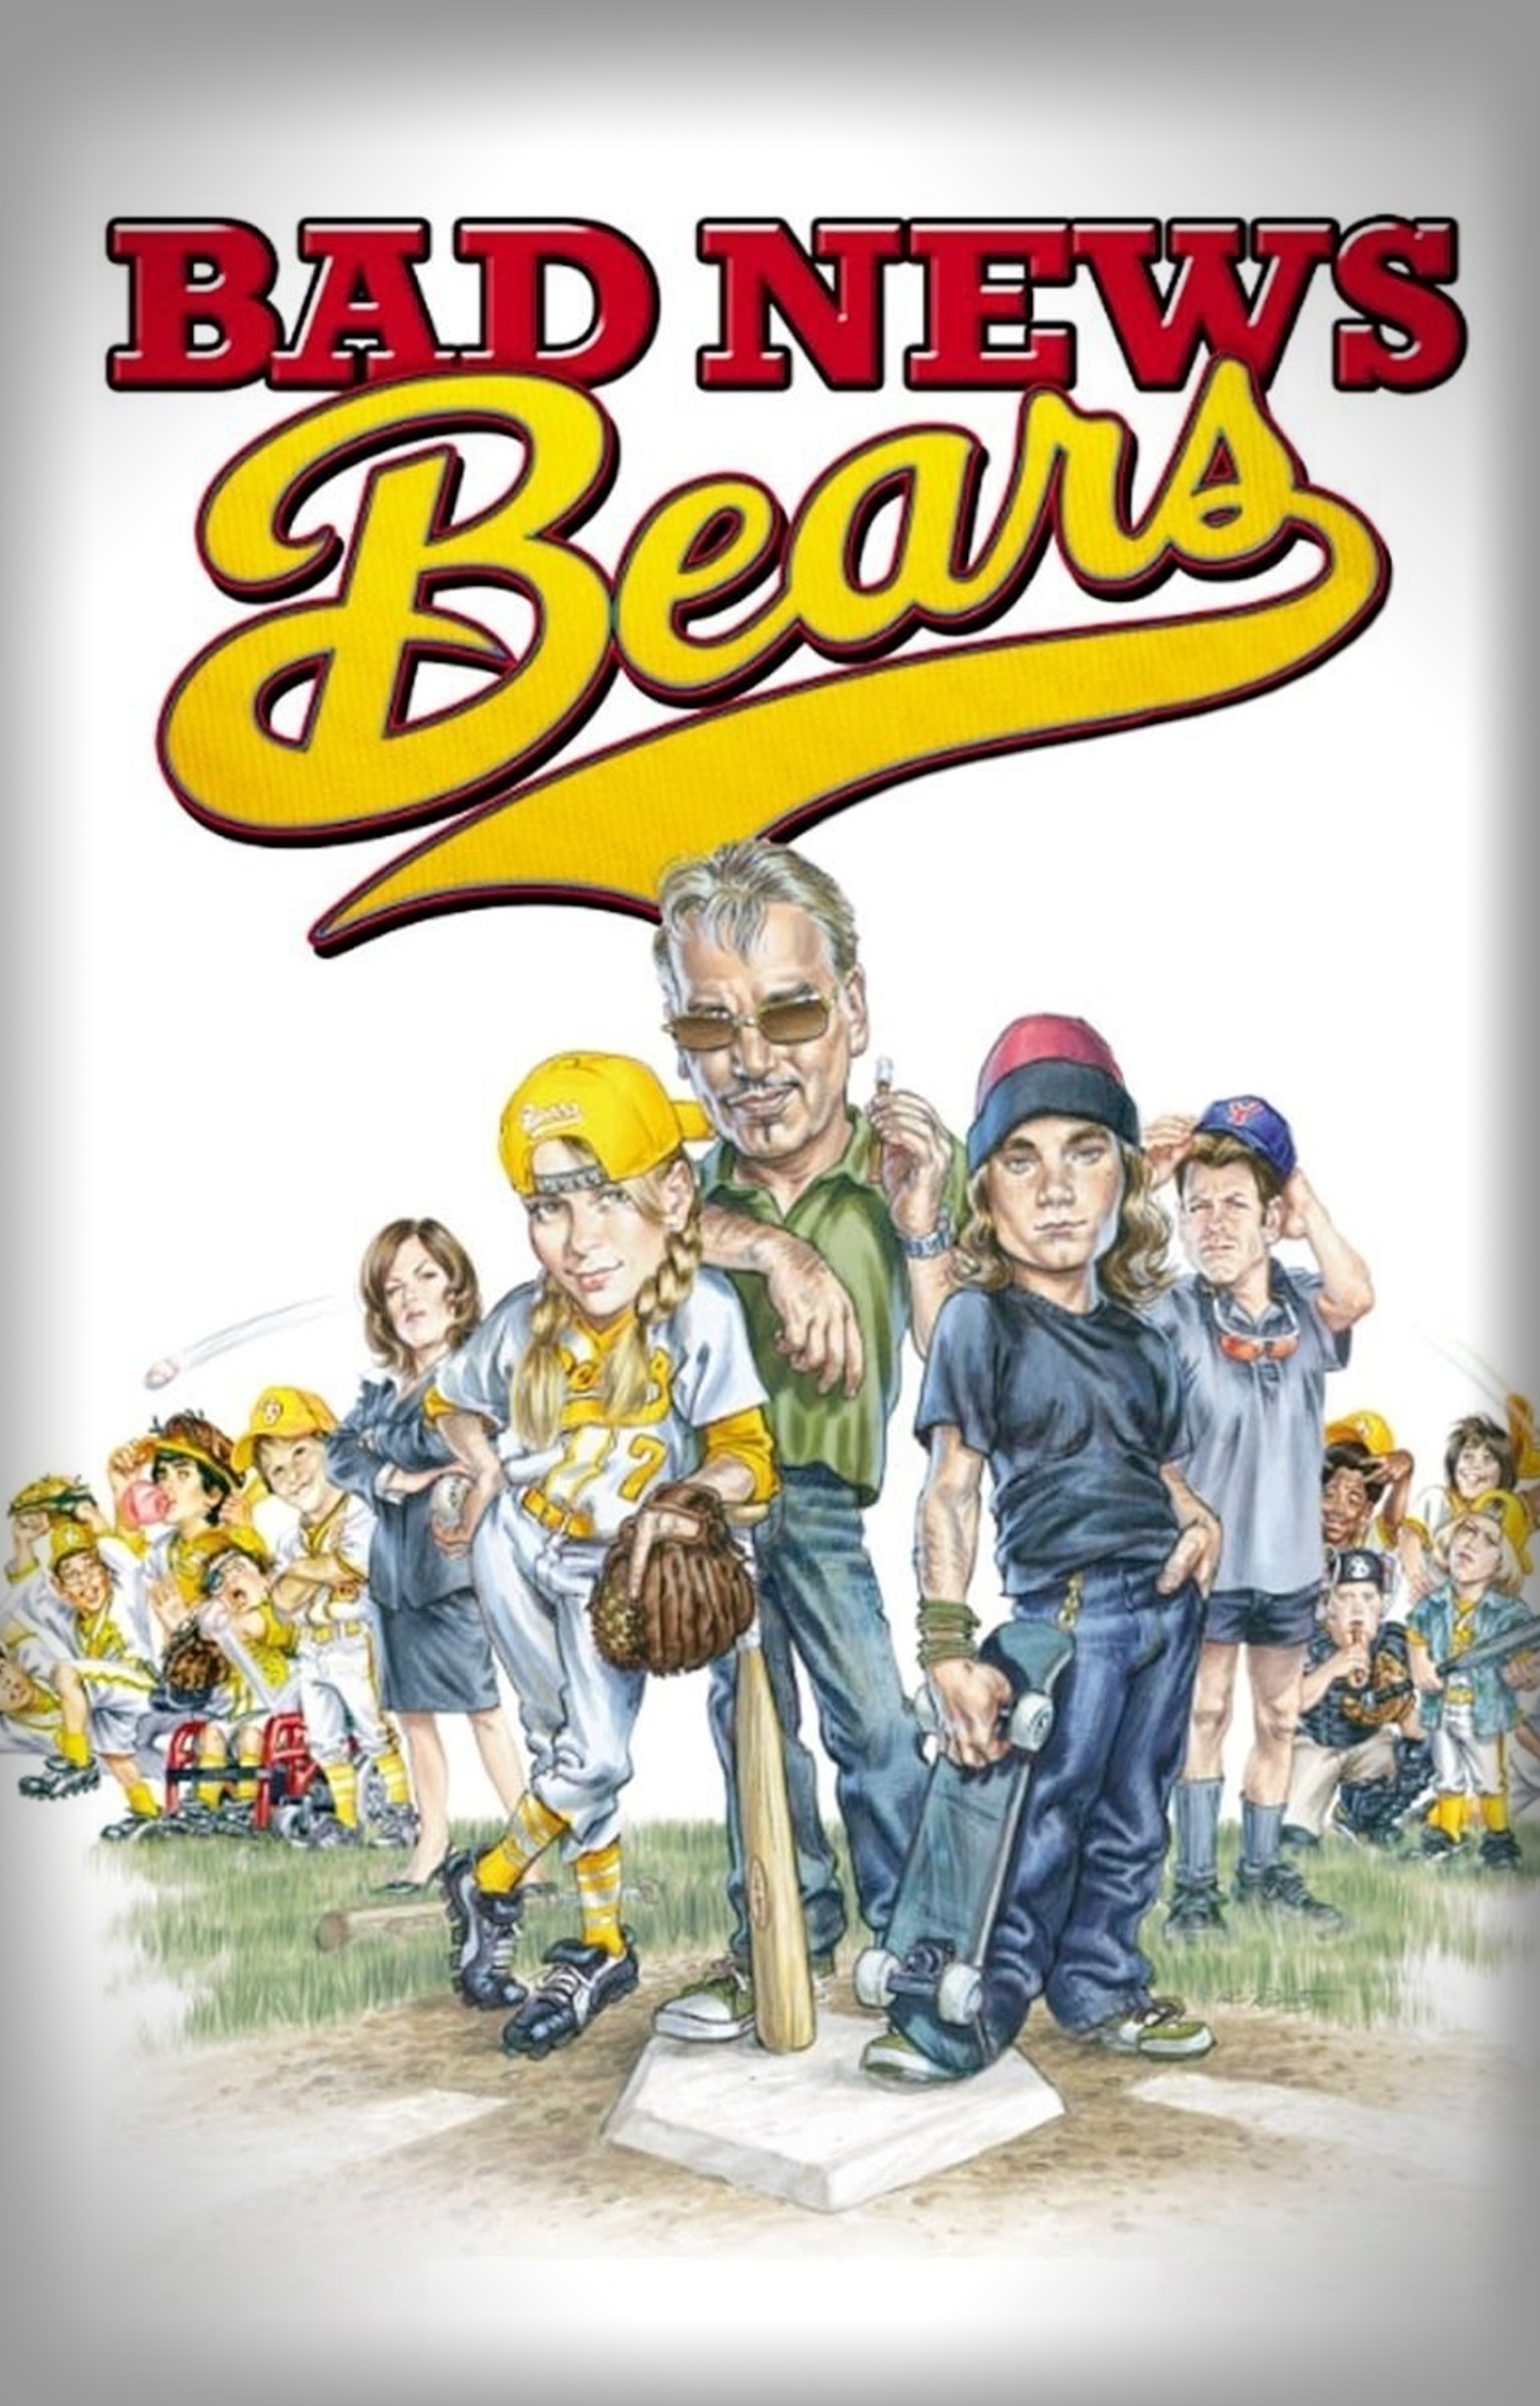 Bad News Bears Poster.jpg